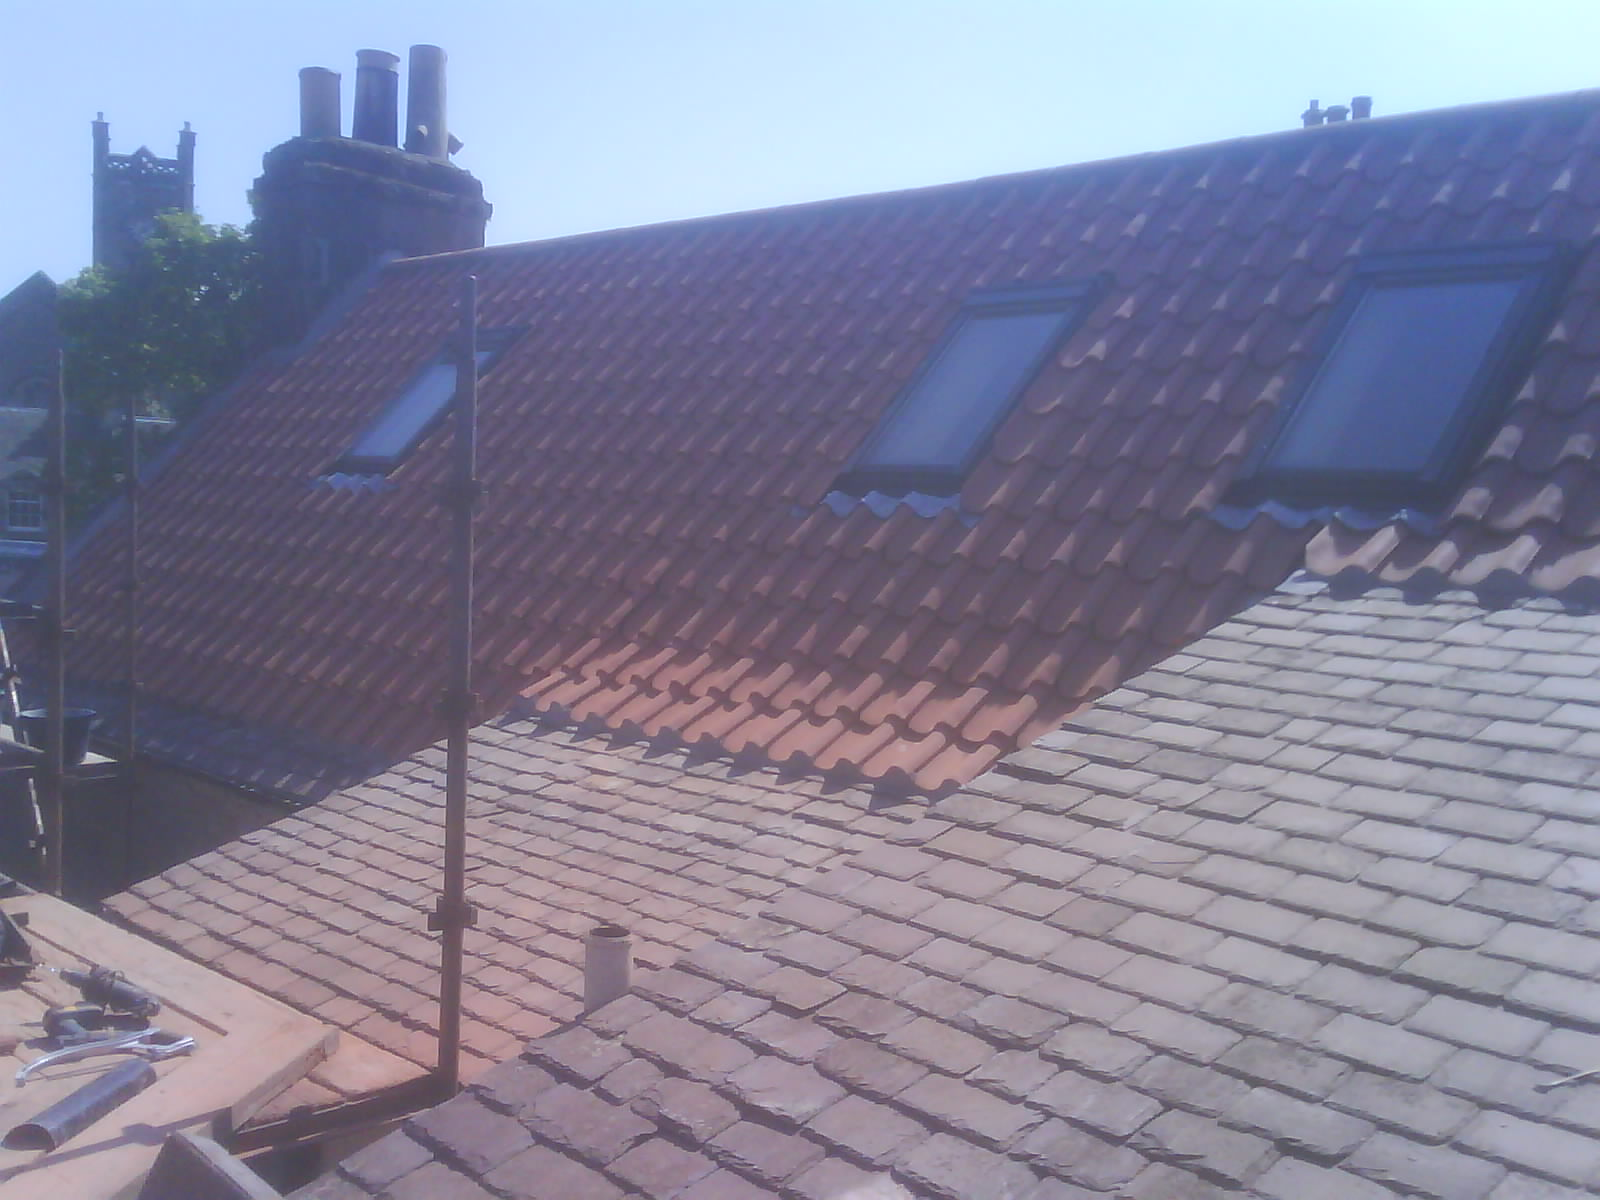 Old english pan tiles with slate roof rear view 2.JPG